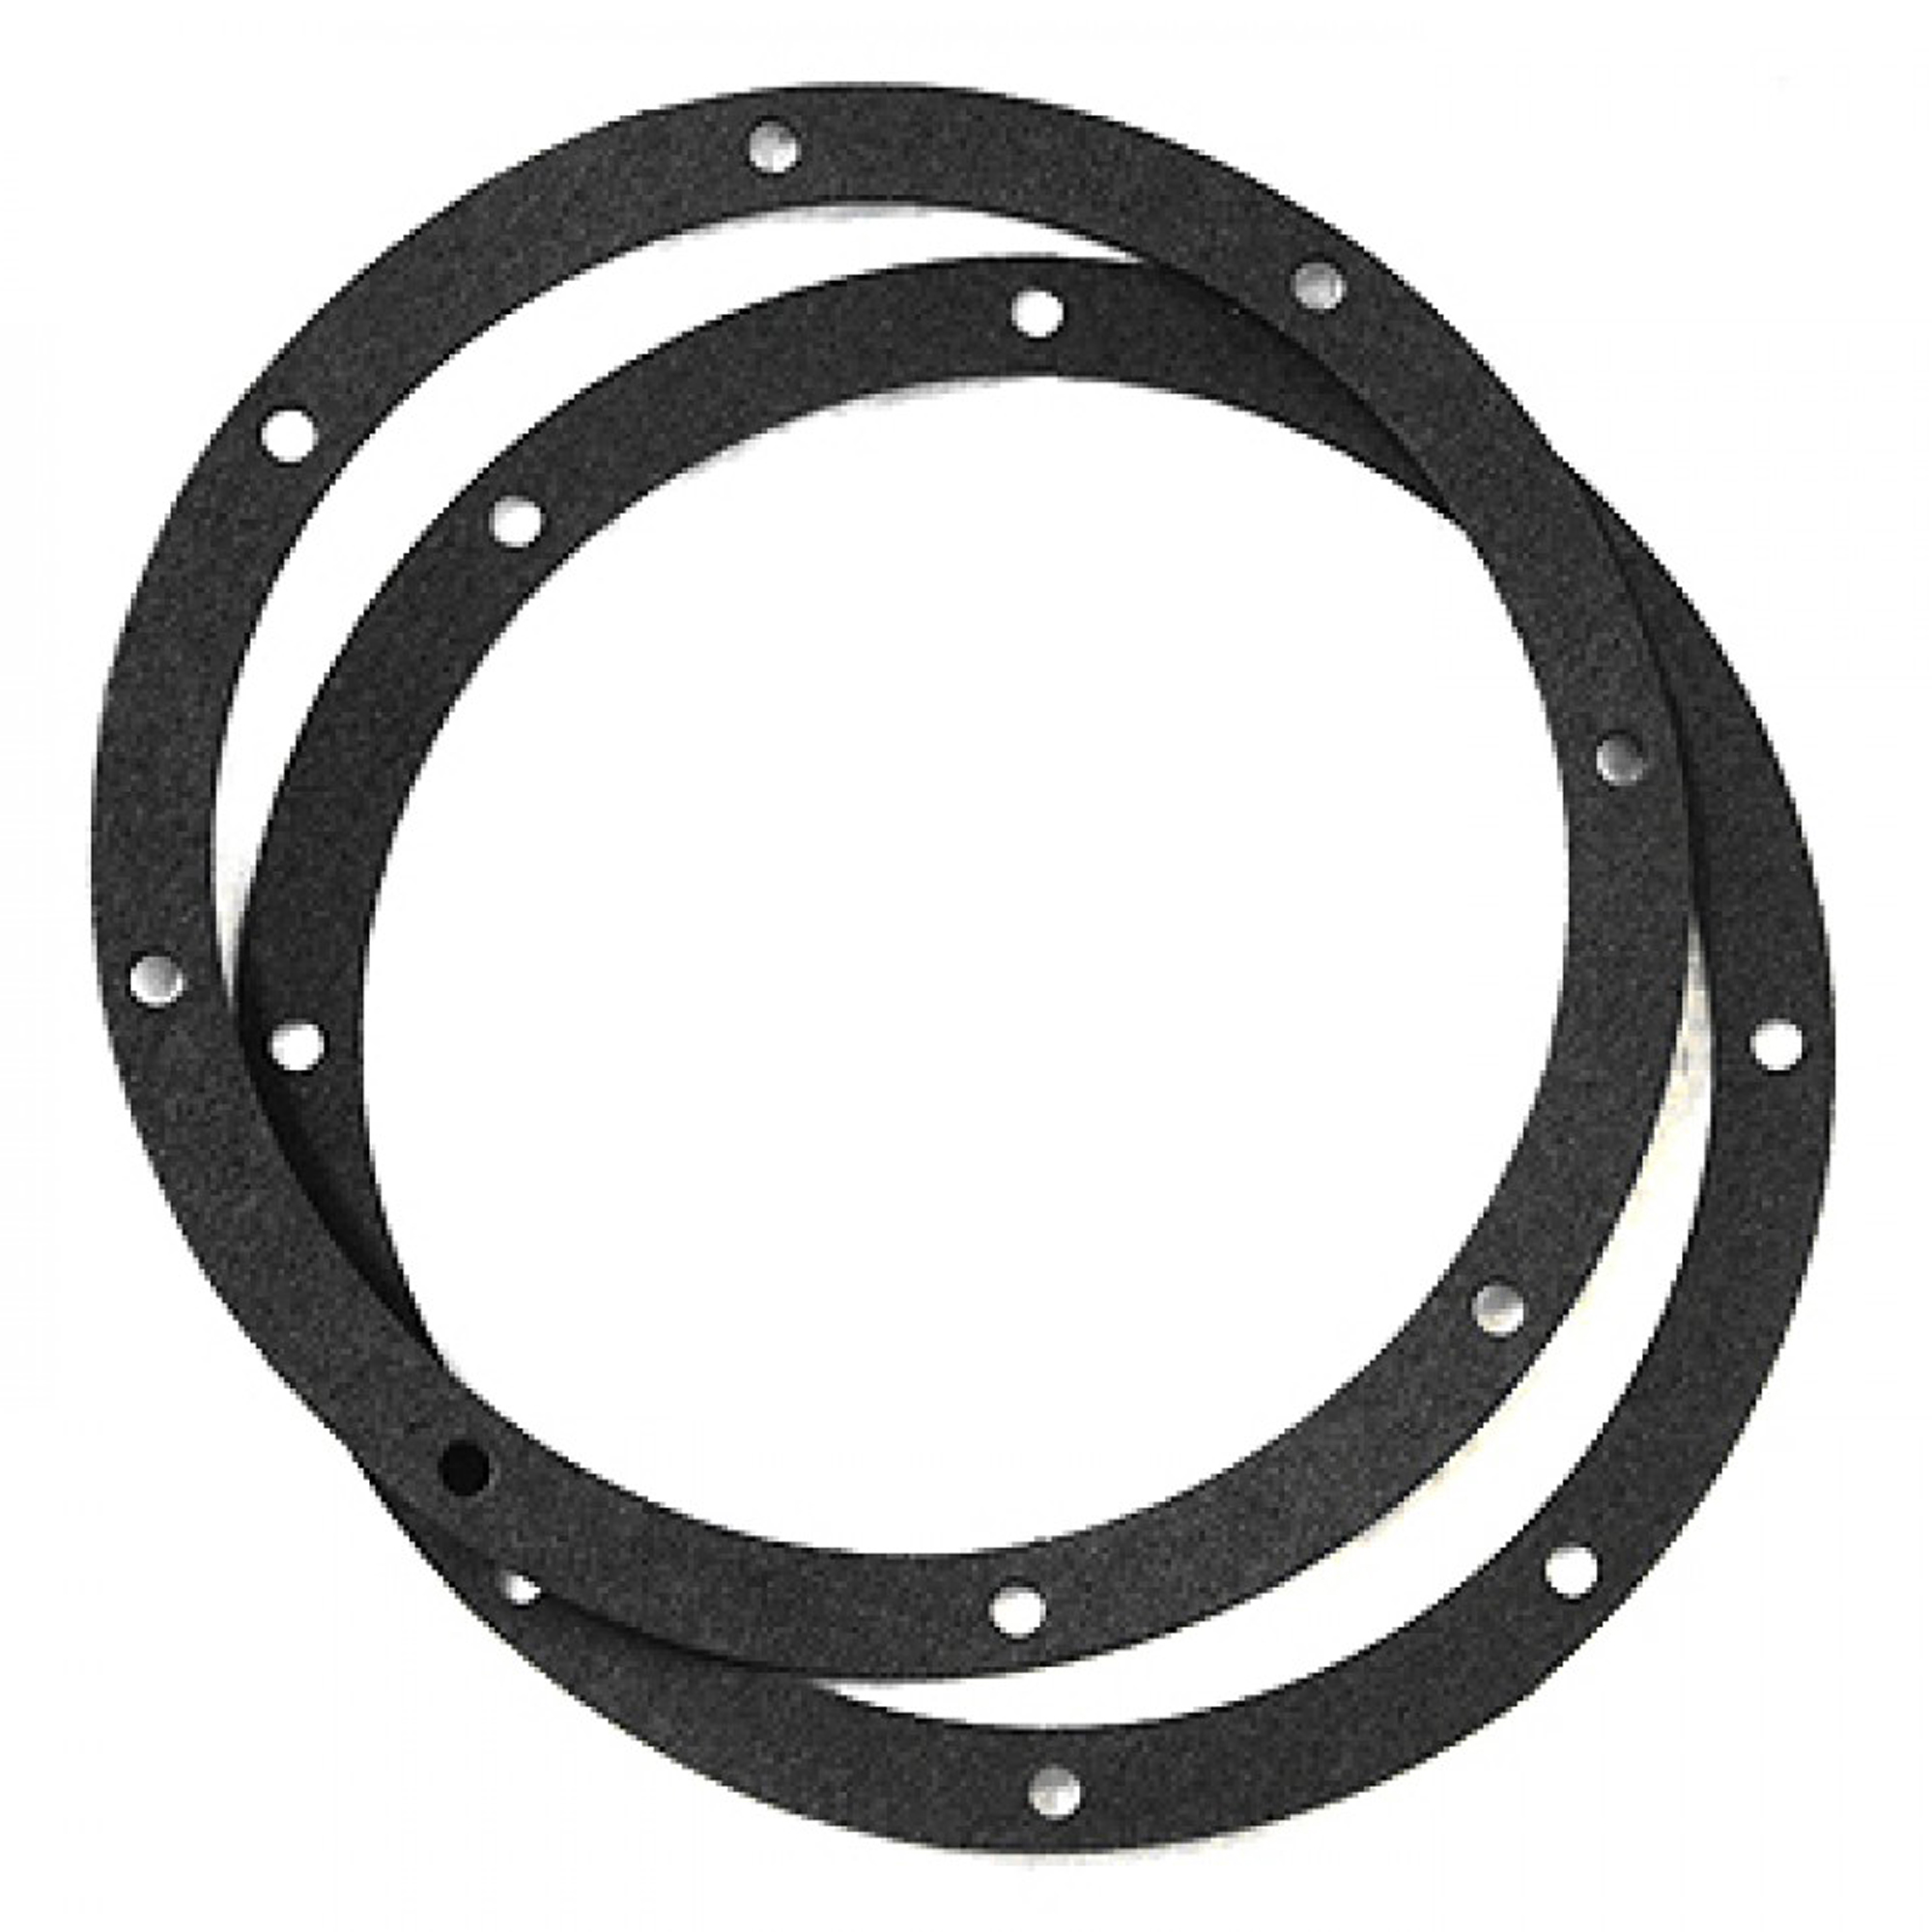 Above ground swimming pool replacement main drain gaskets - Swimming pool main drain cover replacement ...